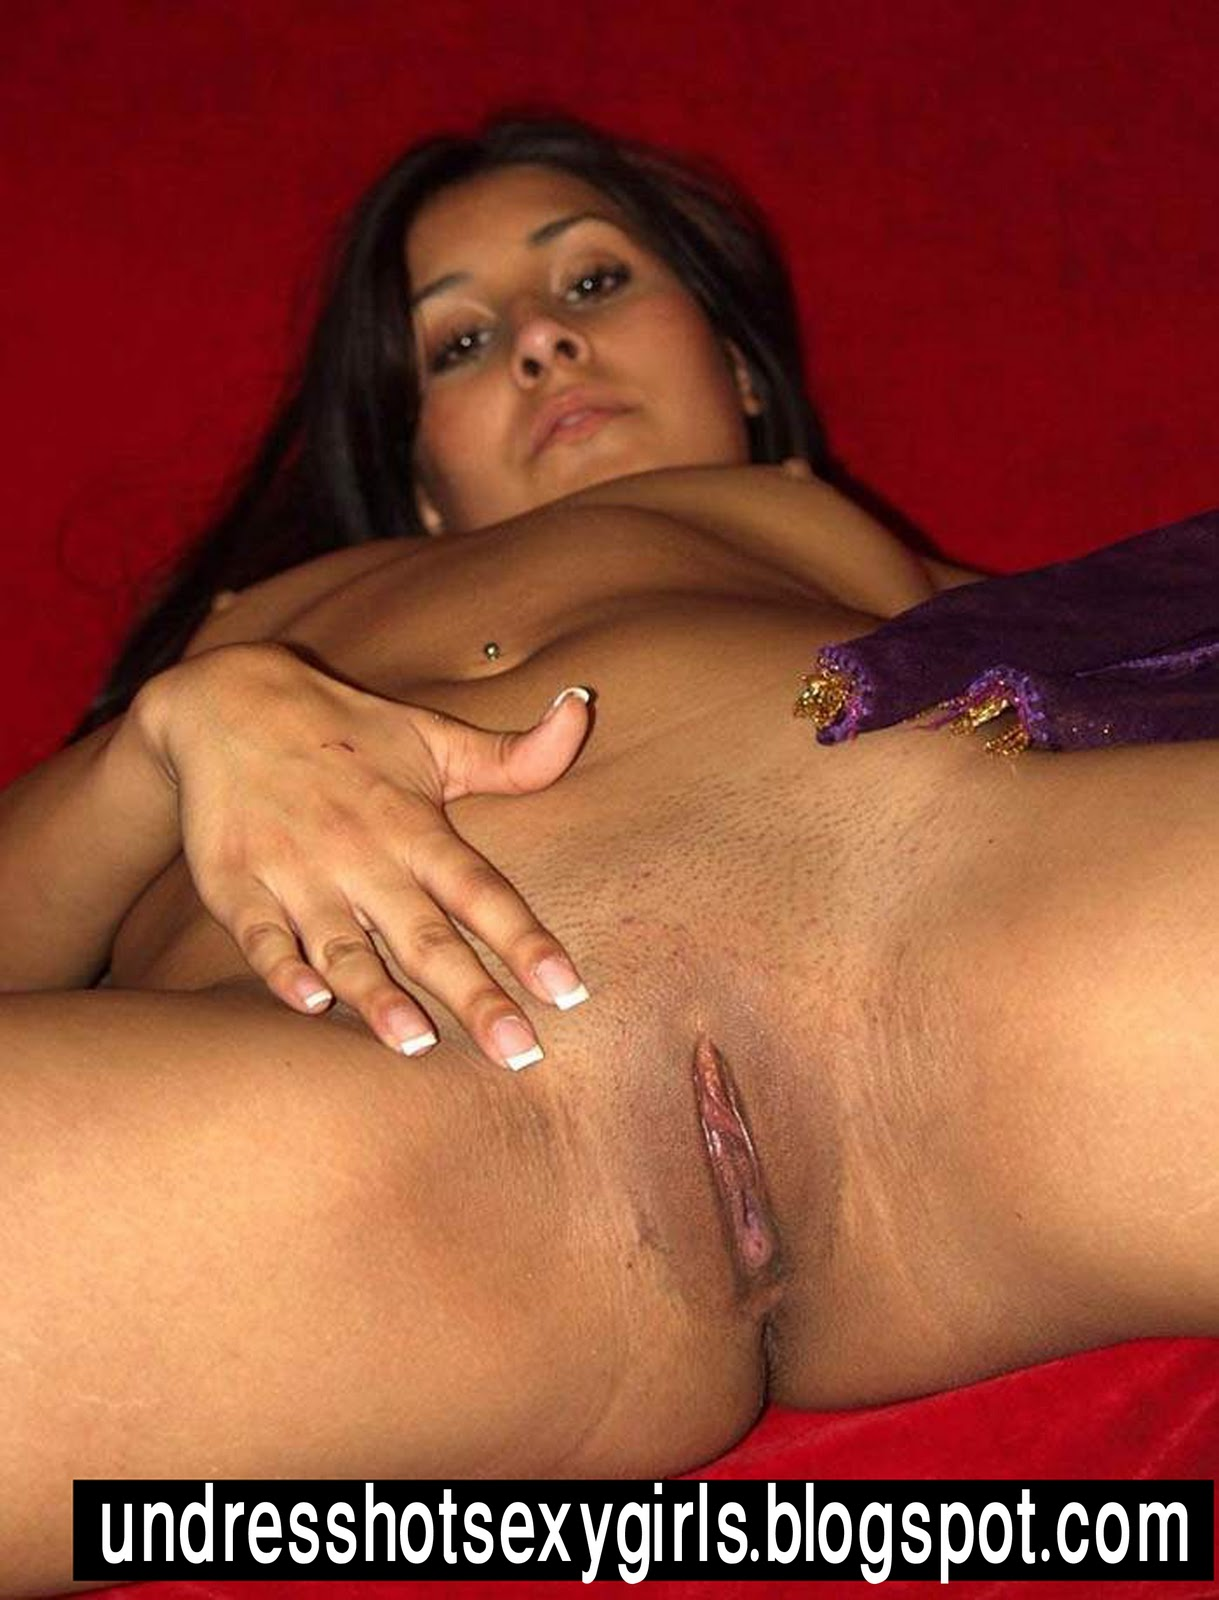 With Nude pakistani girls confirm. join